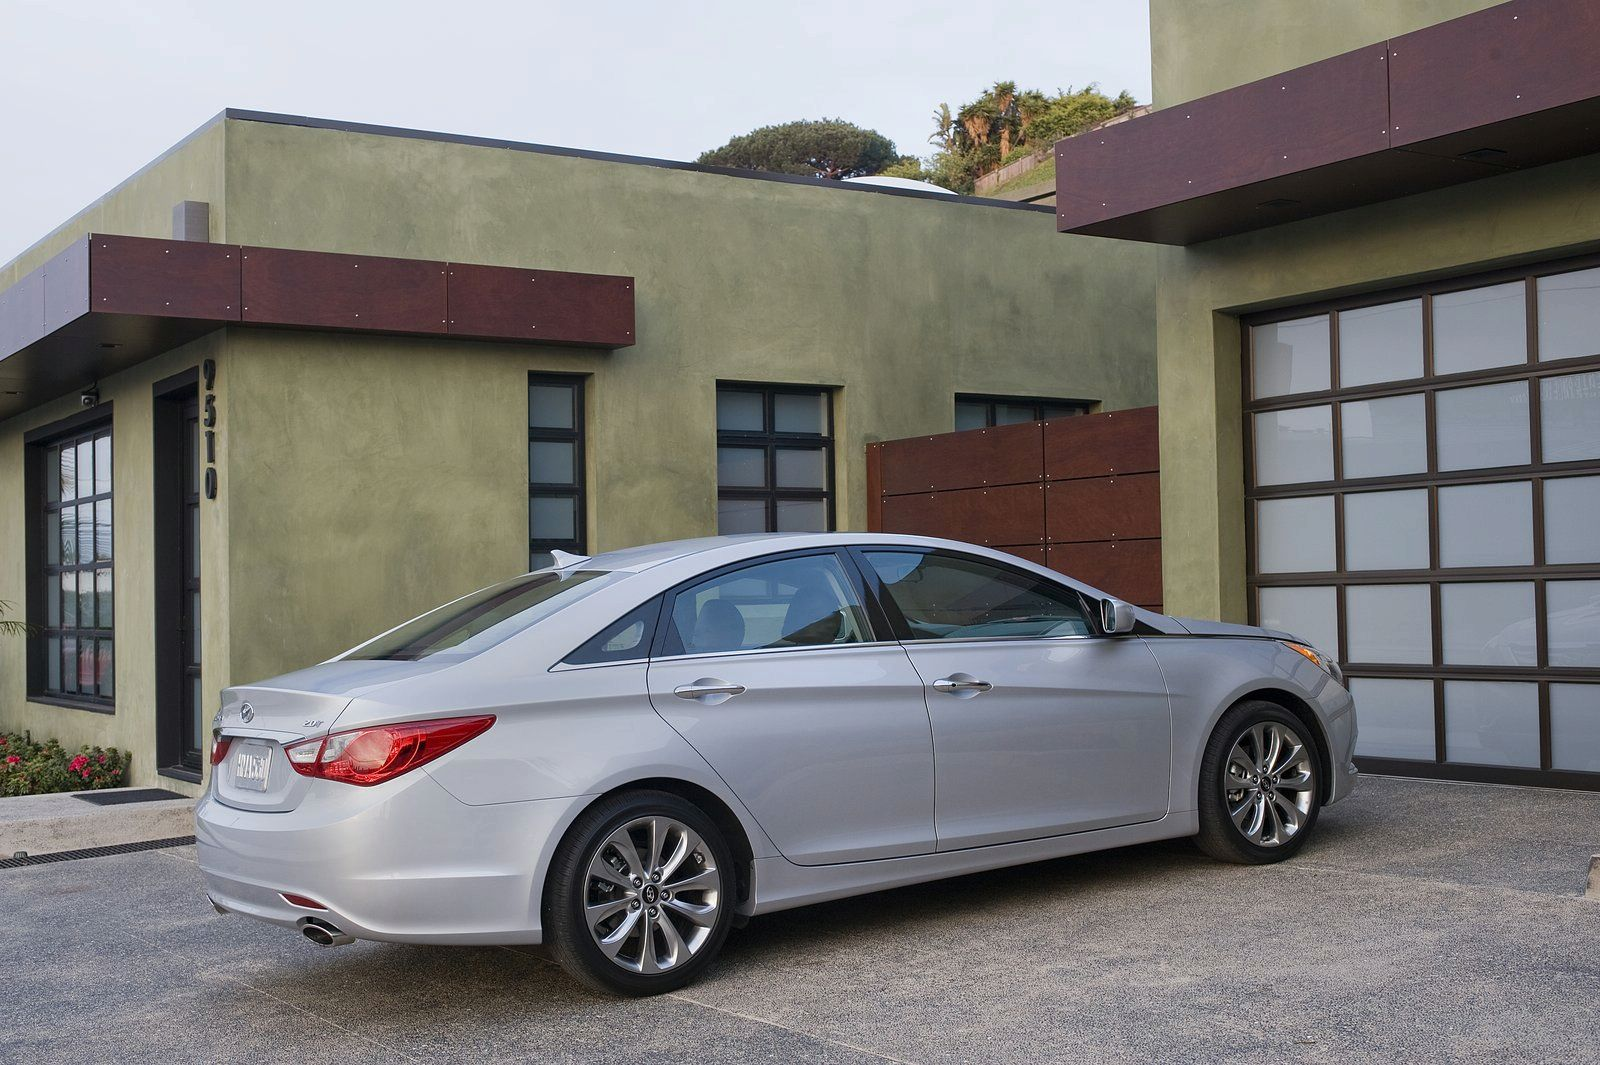 Car Designs 2011 Hyundai Sonata 2 0t Price